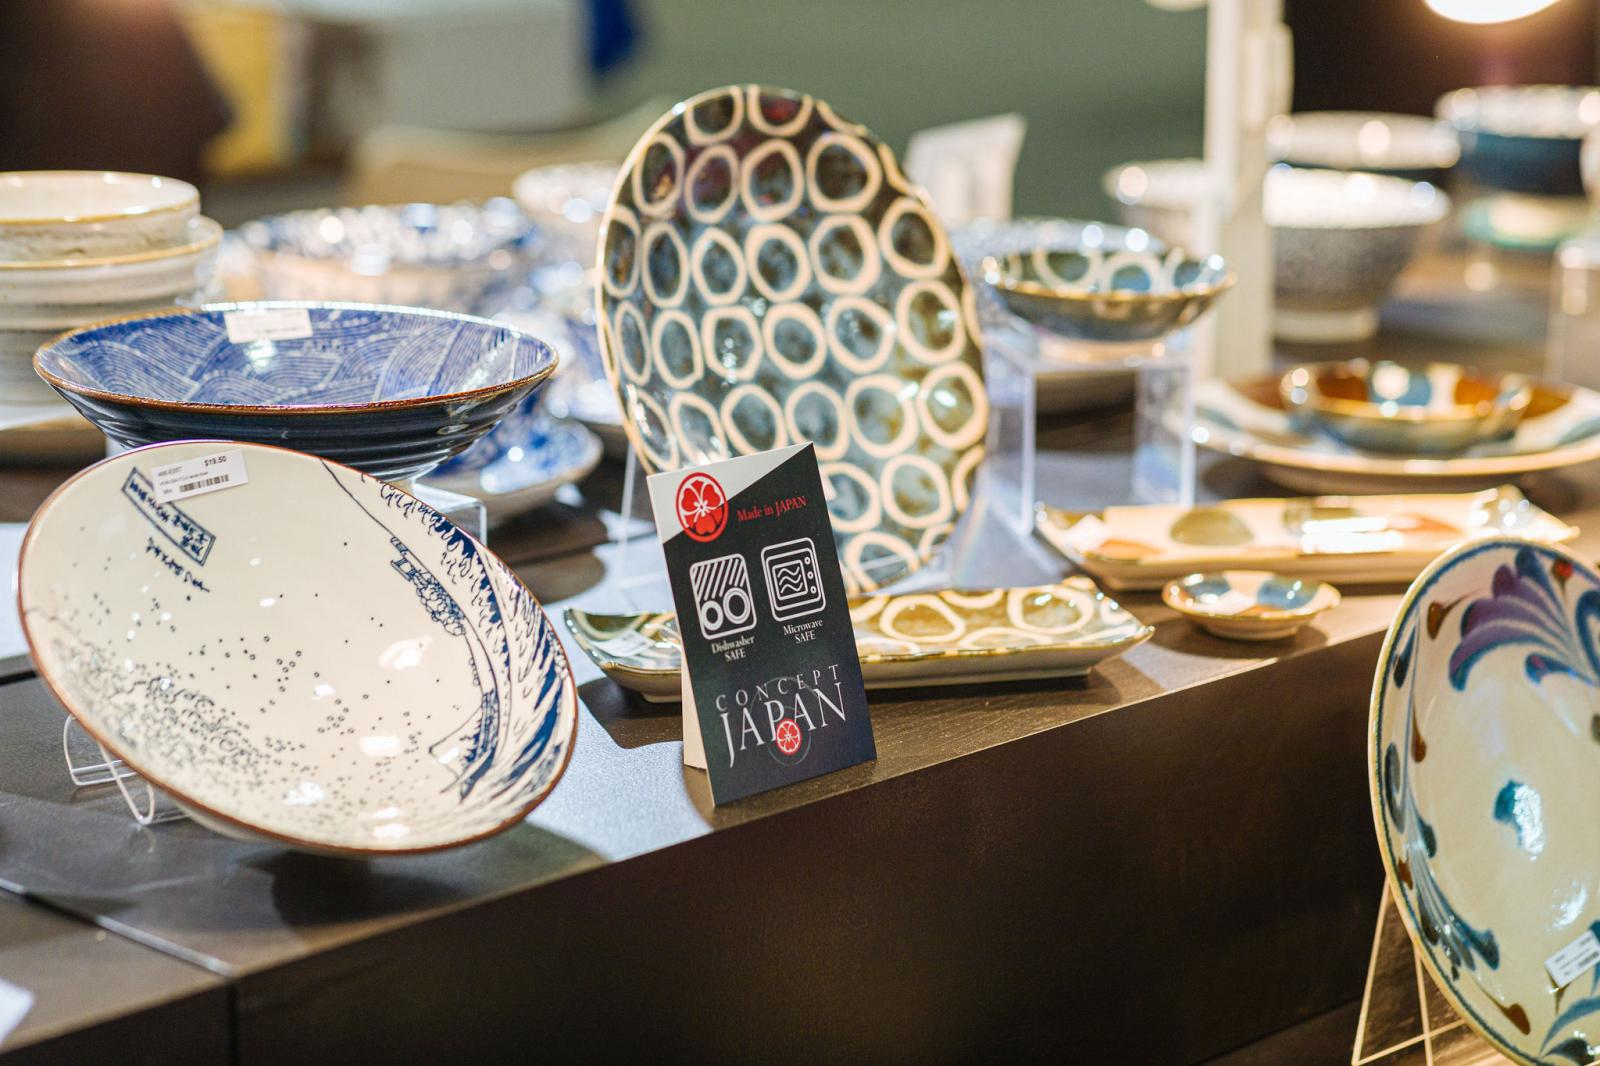 Exhibit at Hospitality Design Fair | Kitchenware and crockery